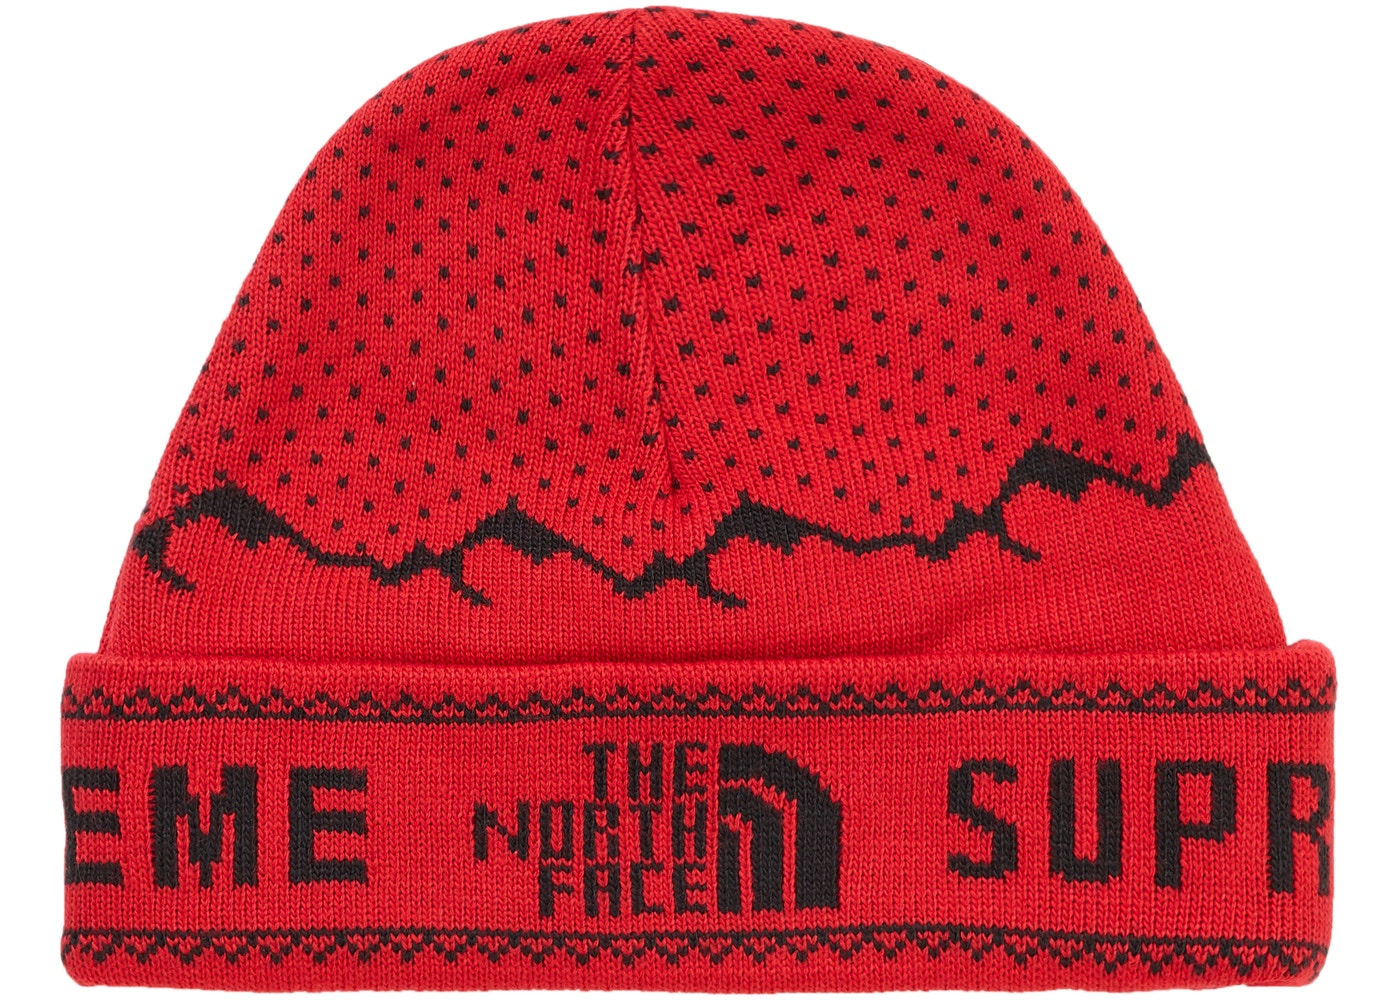 5534a275acd Buy   Sell Supreme Streetwear - New Lowest Asks